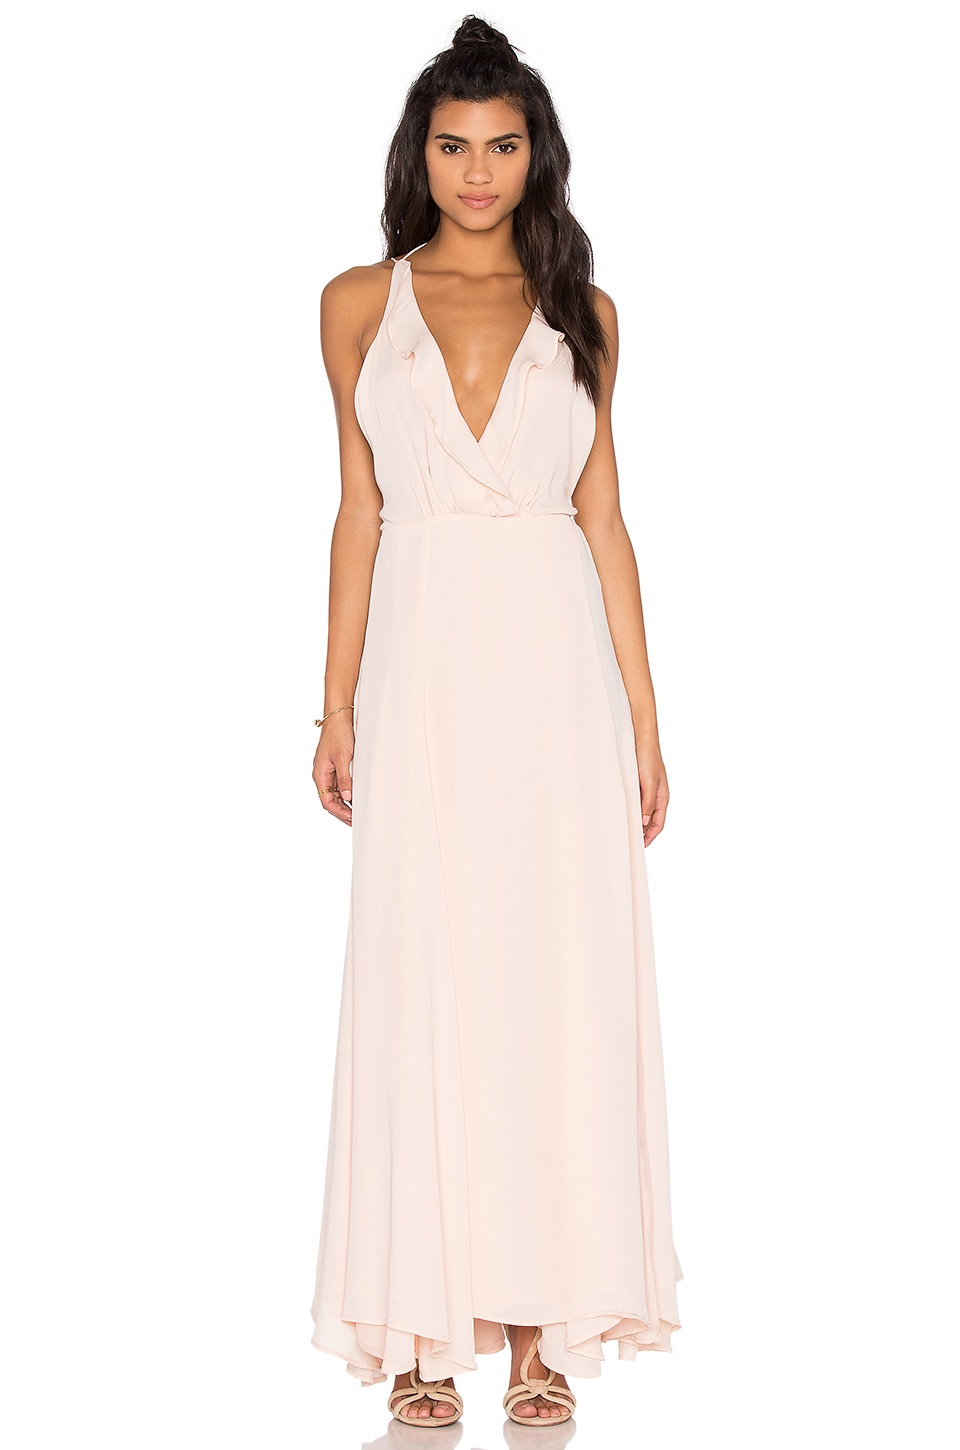 KENDALL + KYLIE Ruffle Wrapped Maxi Dress in Soft Pink | REVOLVE